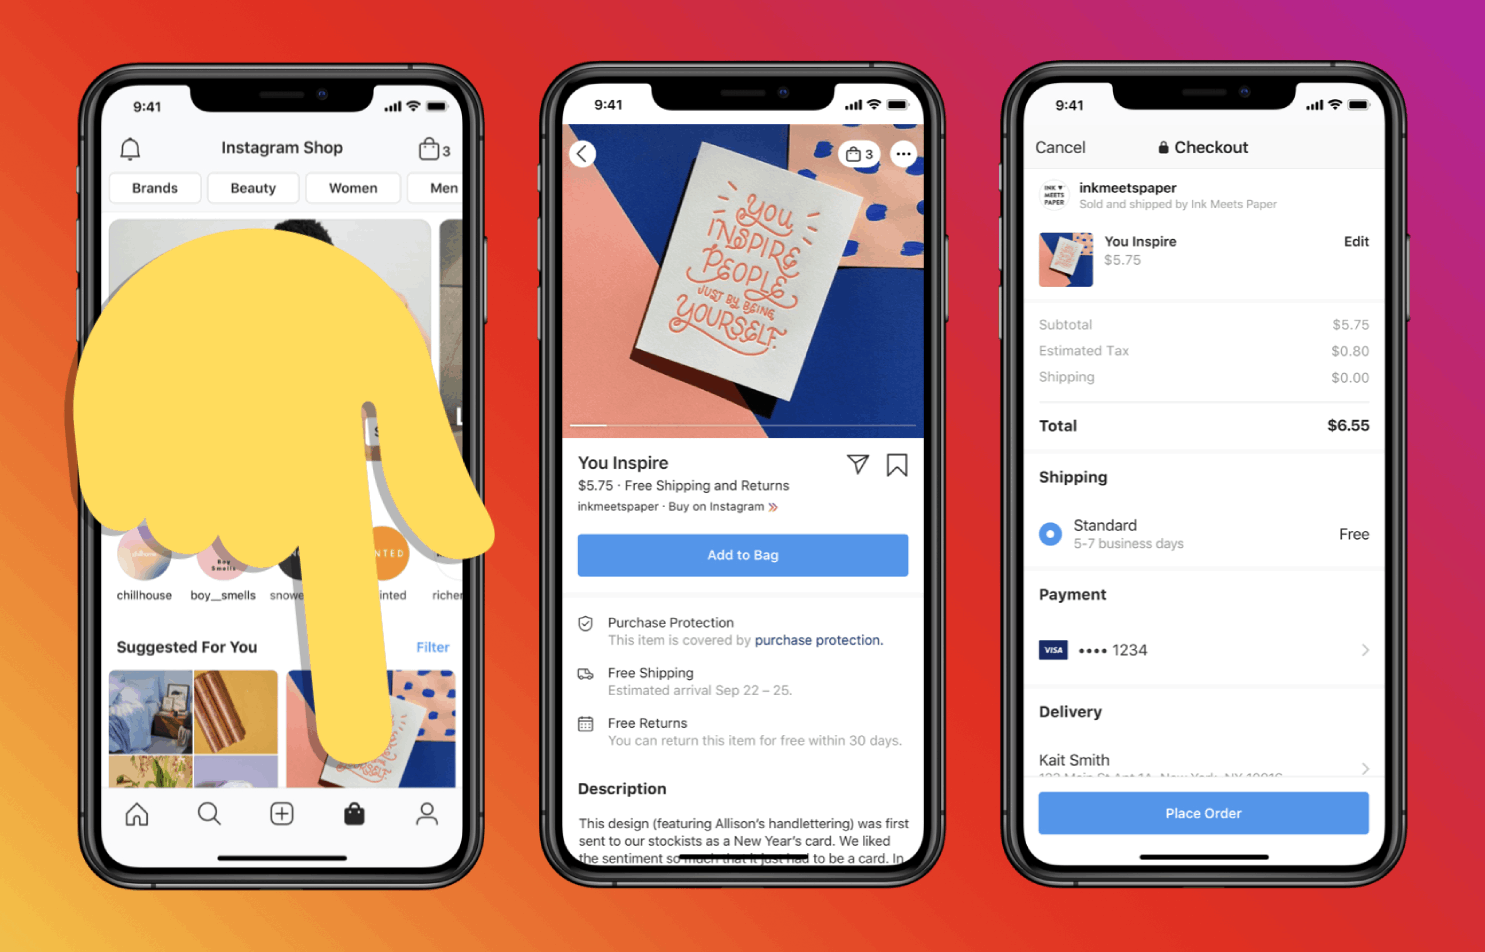 How to Make Instagram Shoppable Posts Work for You